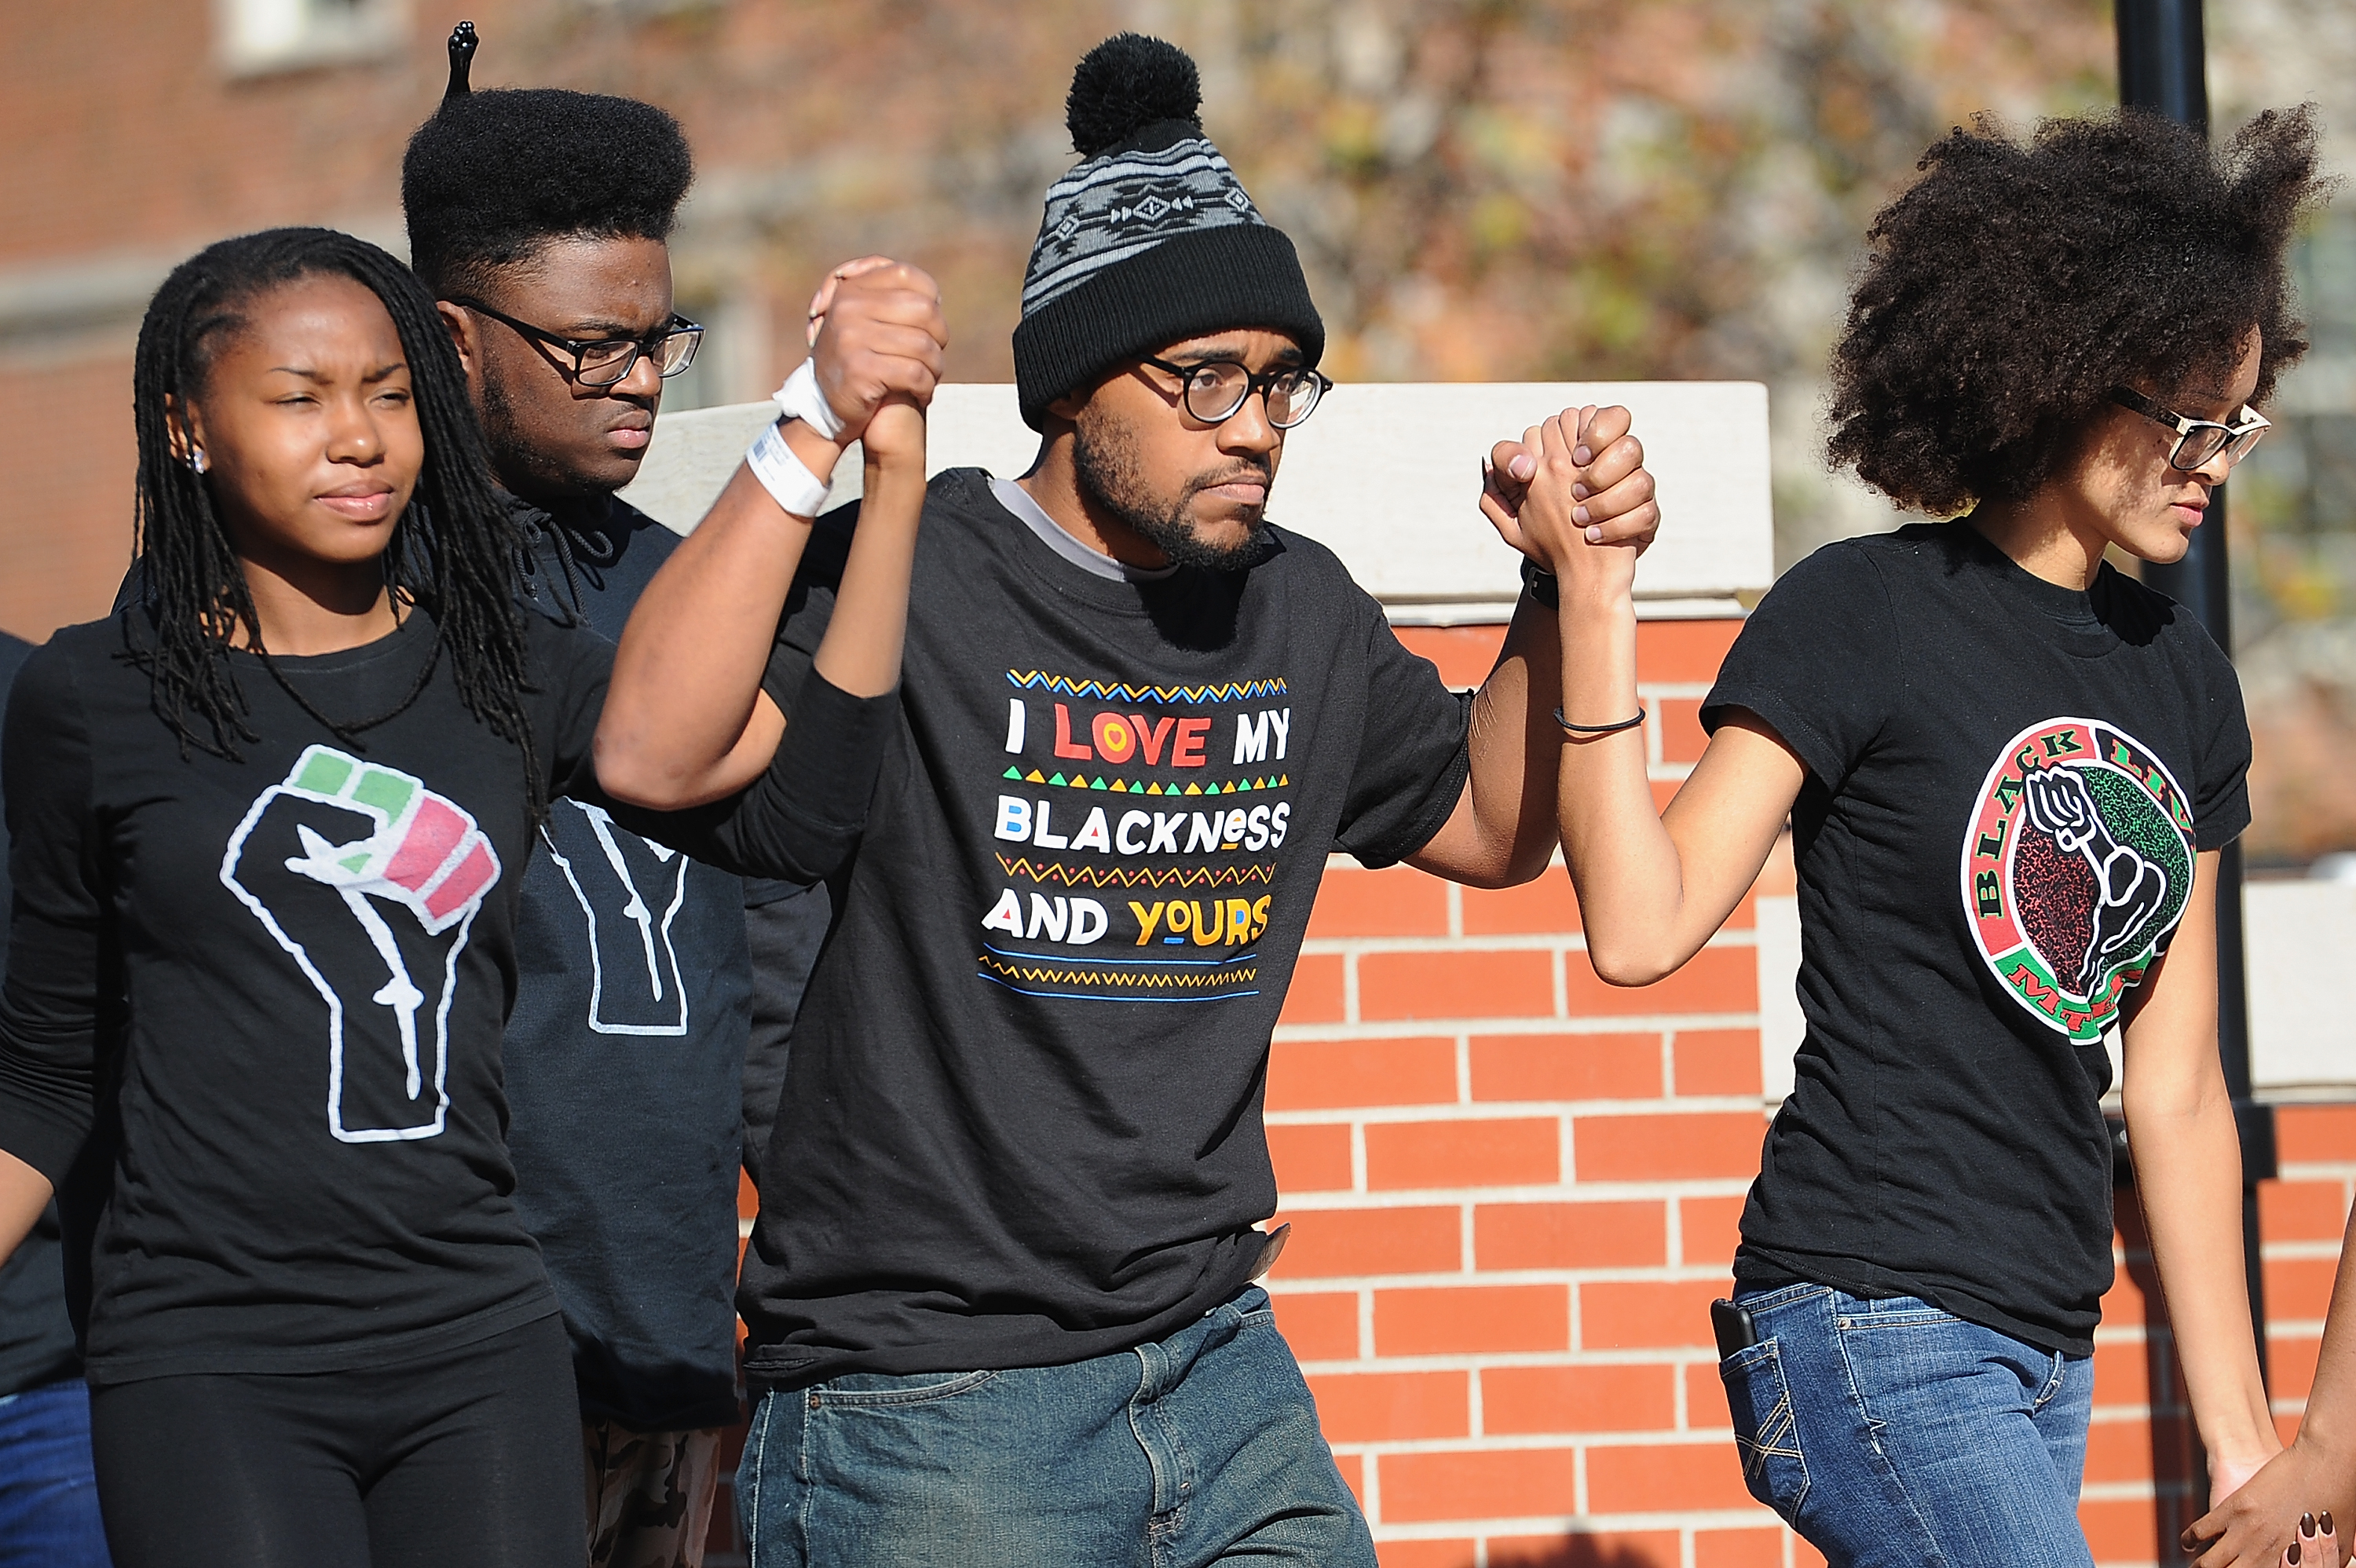 University of Missouri President Resigns As Protests Grow over Racism